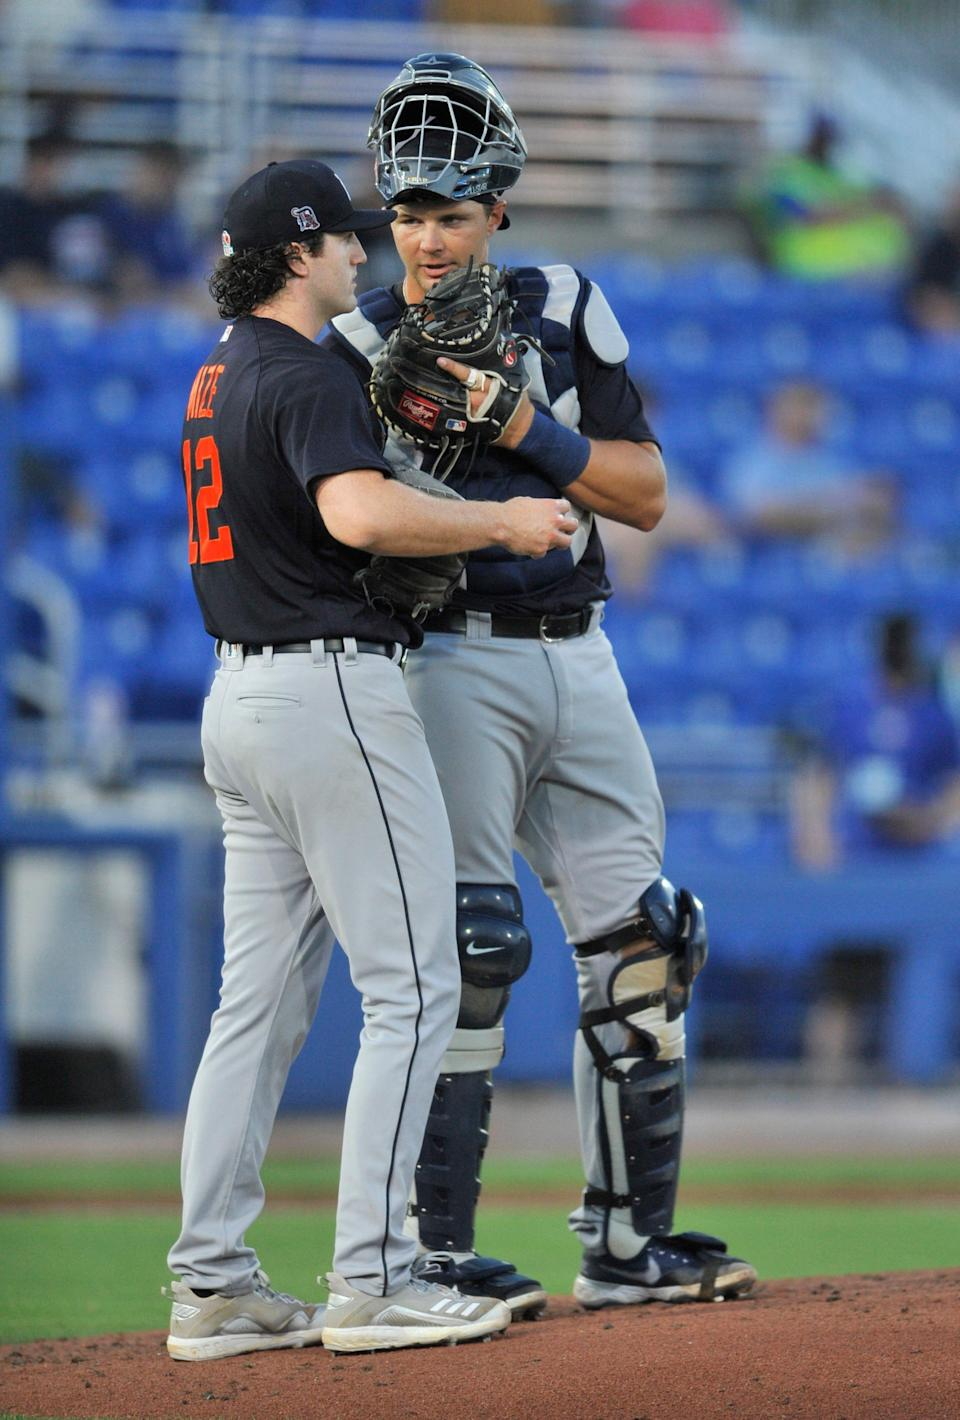 Detroit Tigers catcher Grayson Greiner, right, talks with pitcher Casey Mize during the third inning of the team's spring training baseball game against the Toronto Blue Jays in Dunedin, Fla., Thursday, March 25, 2021. (Steve Nesius/The Canadian Press via AP)